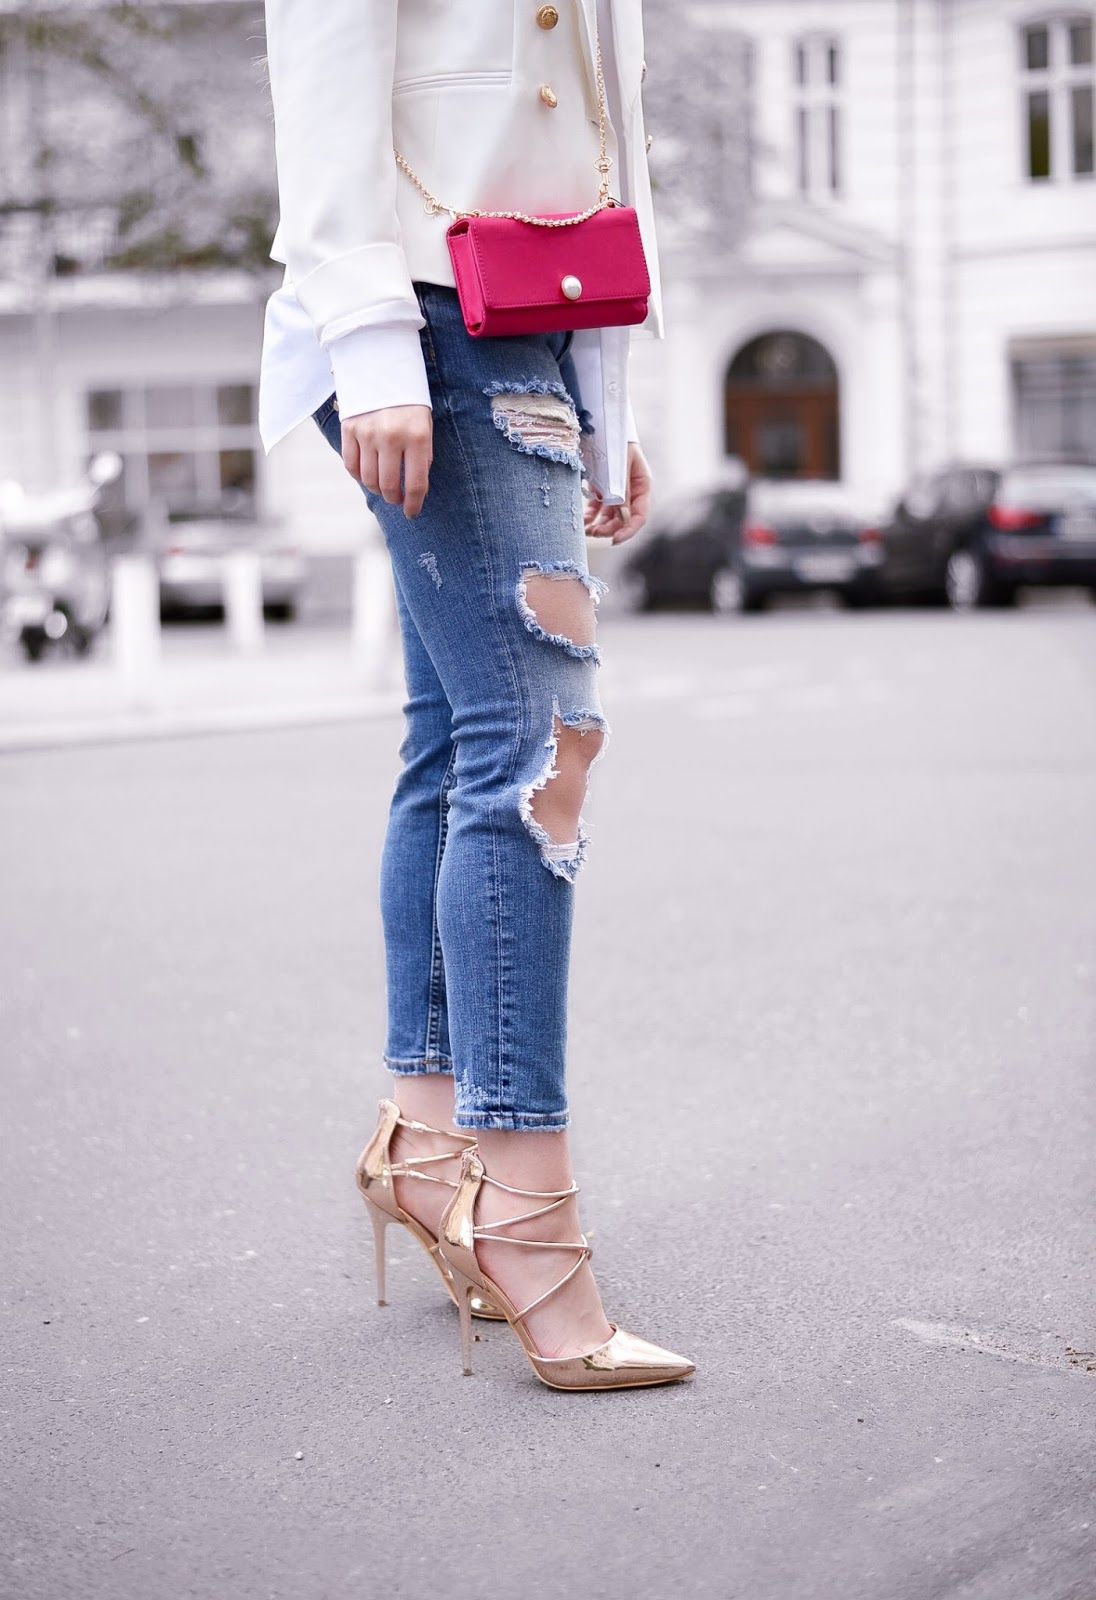 zara ripped jeans_zara pink clutch bag with pearls_pearl trend